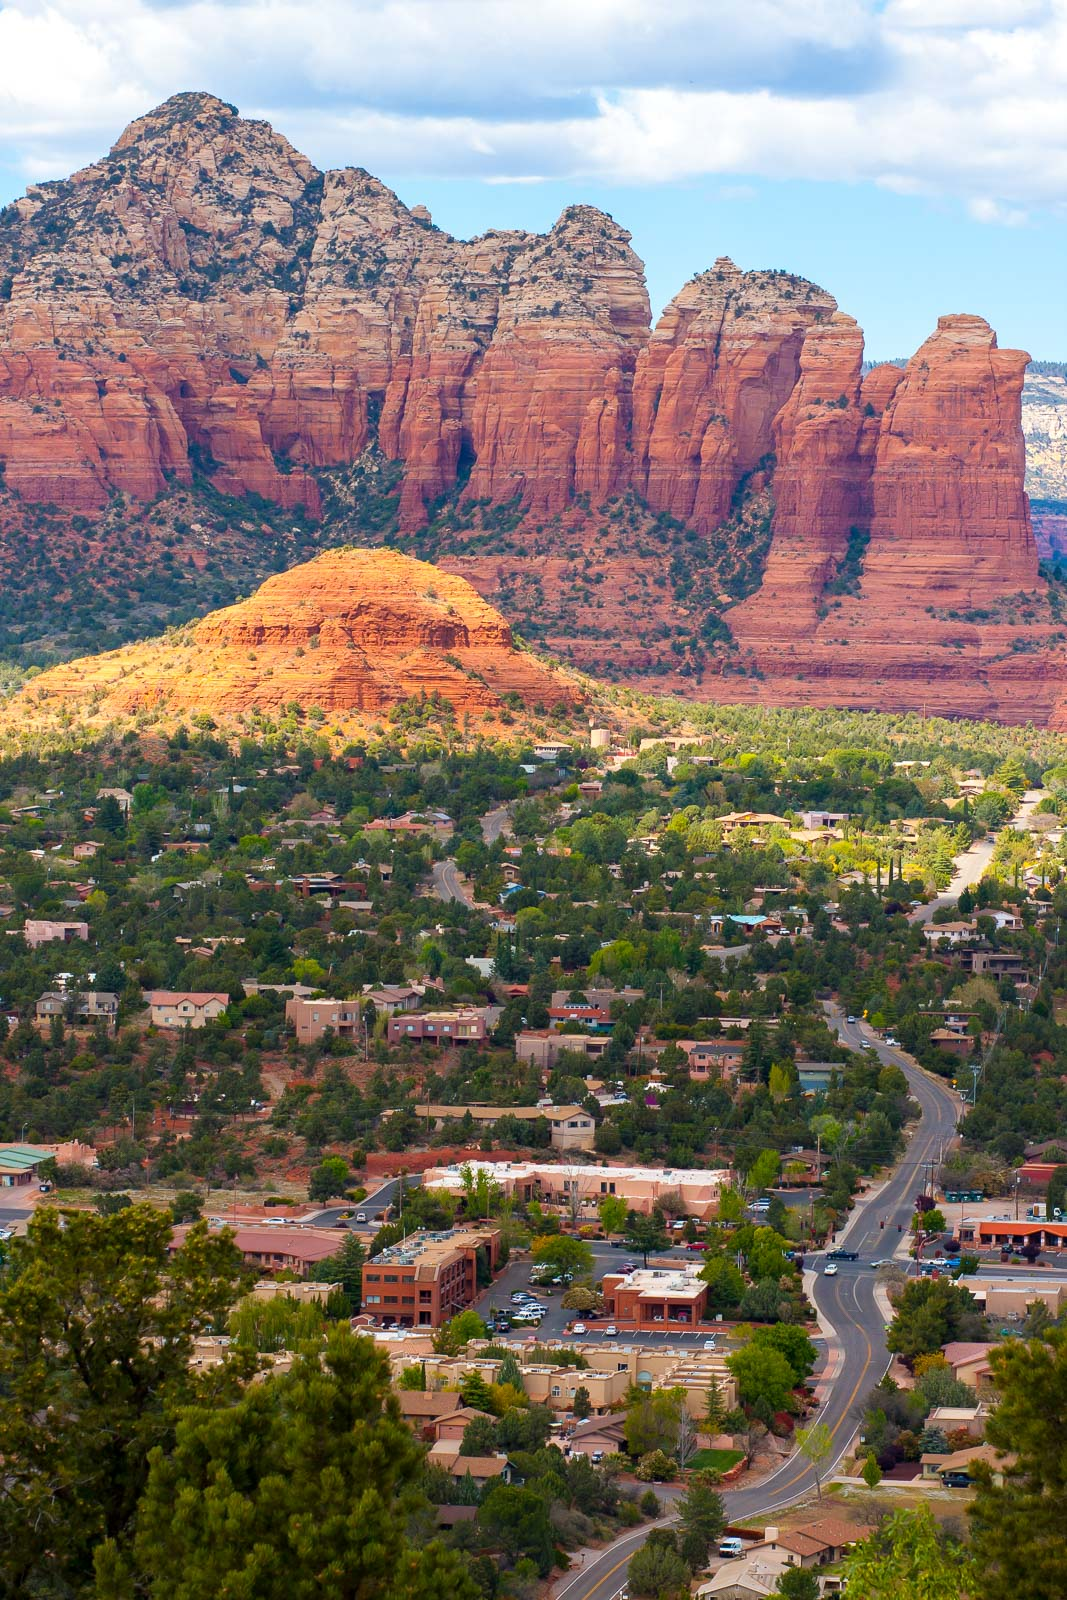 Sedona and the soft rocks of the Supai Formation (red), below the young Coconino sandstone. Daniel Apai.